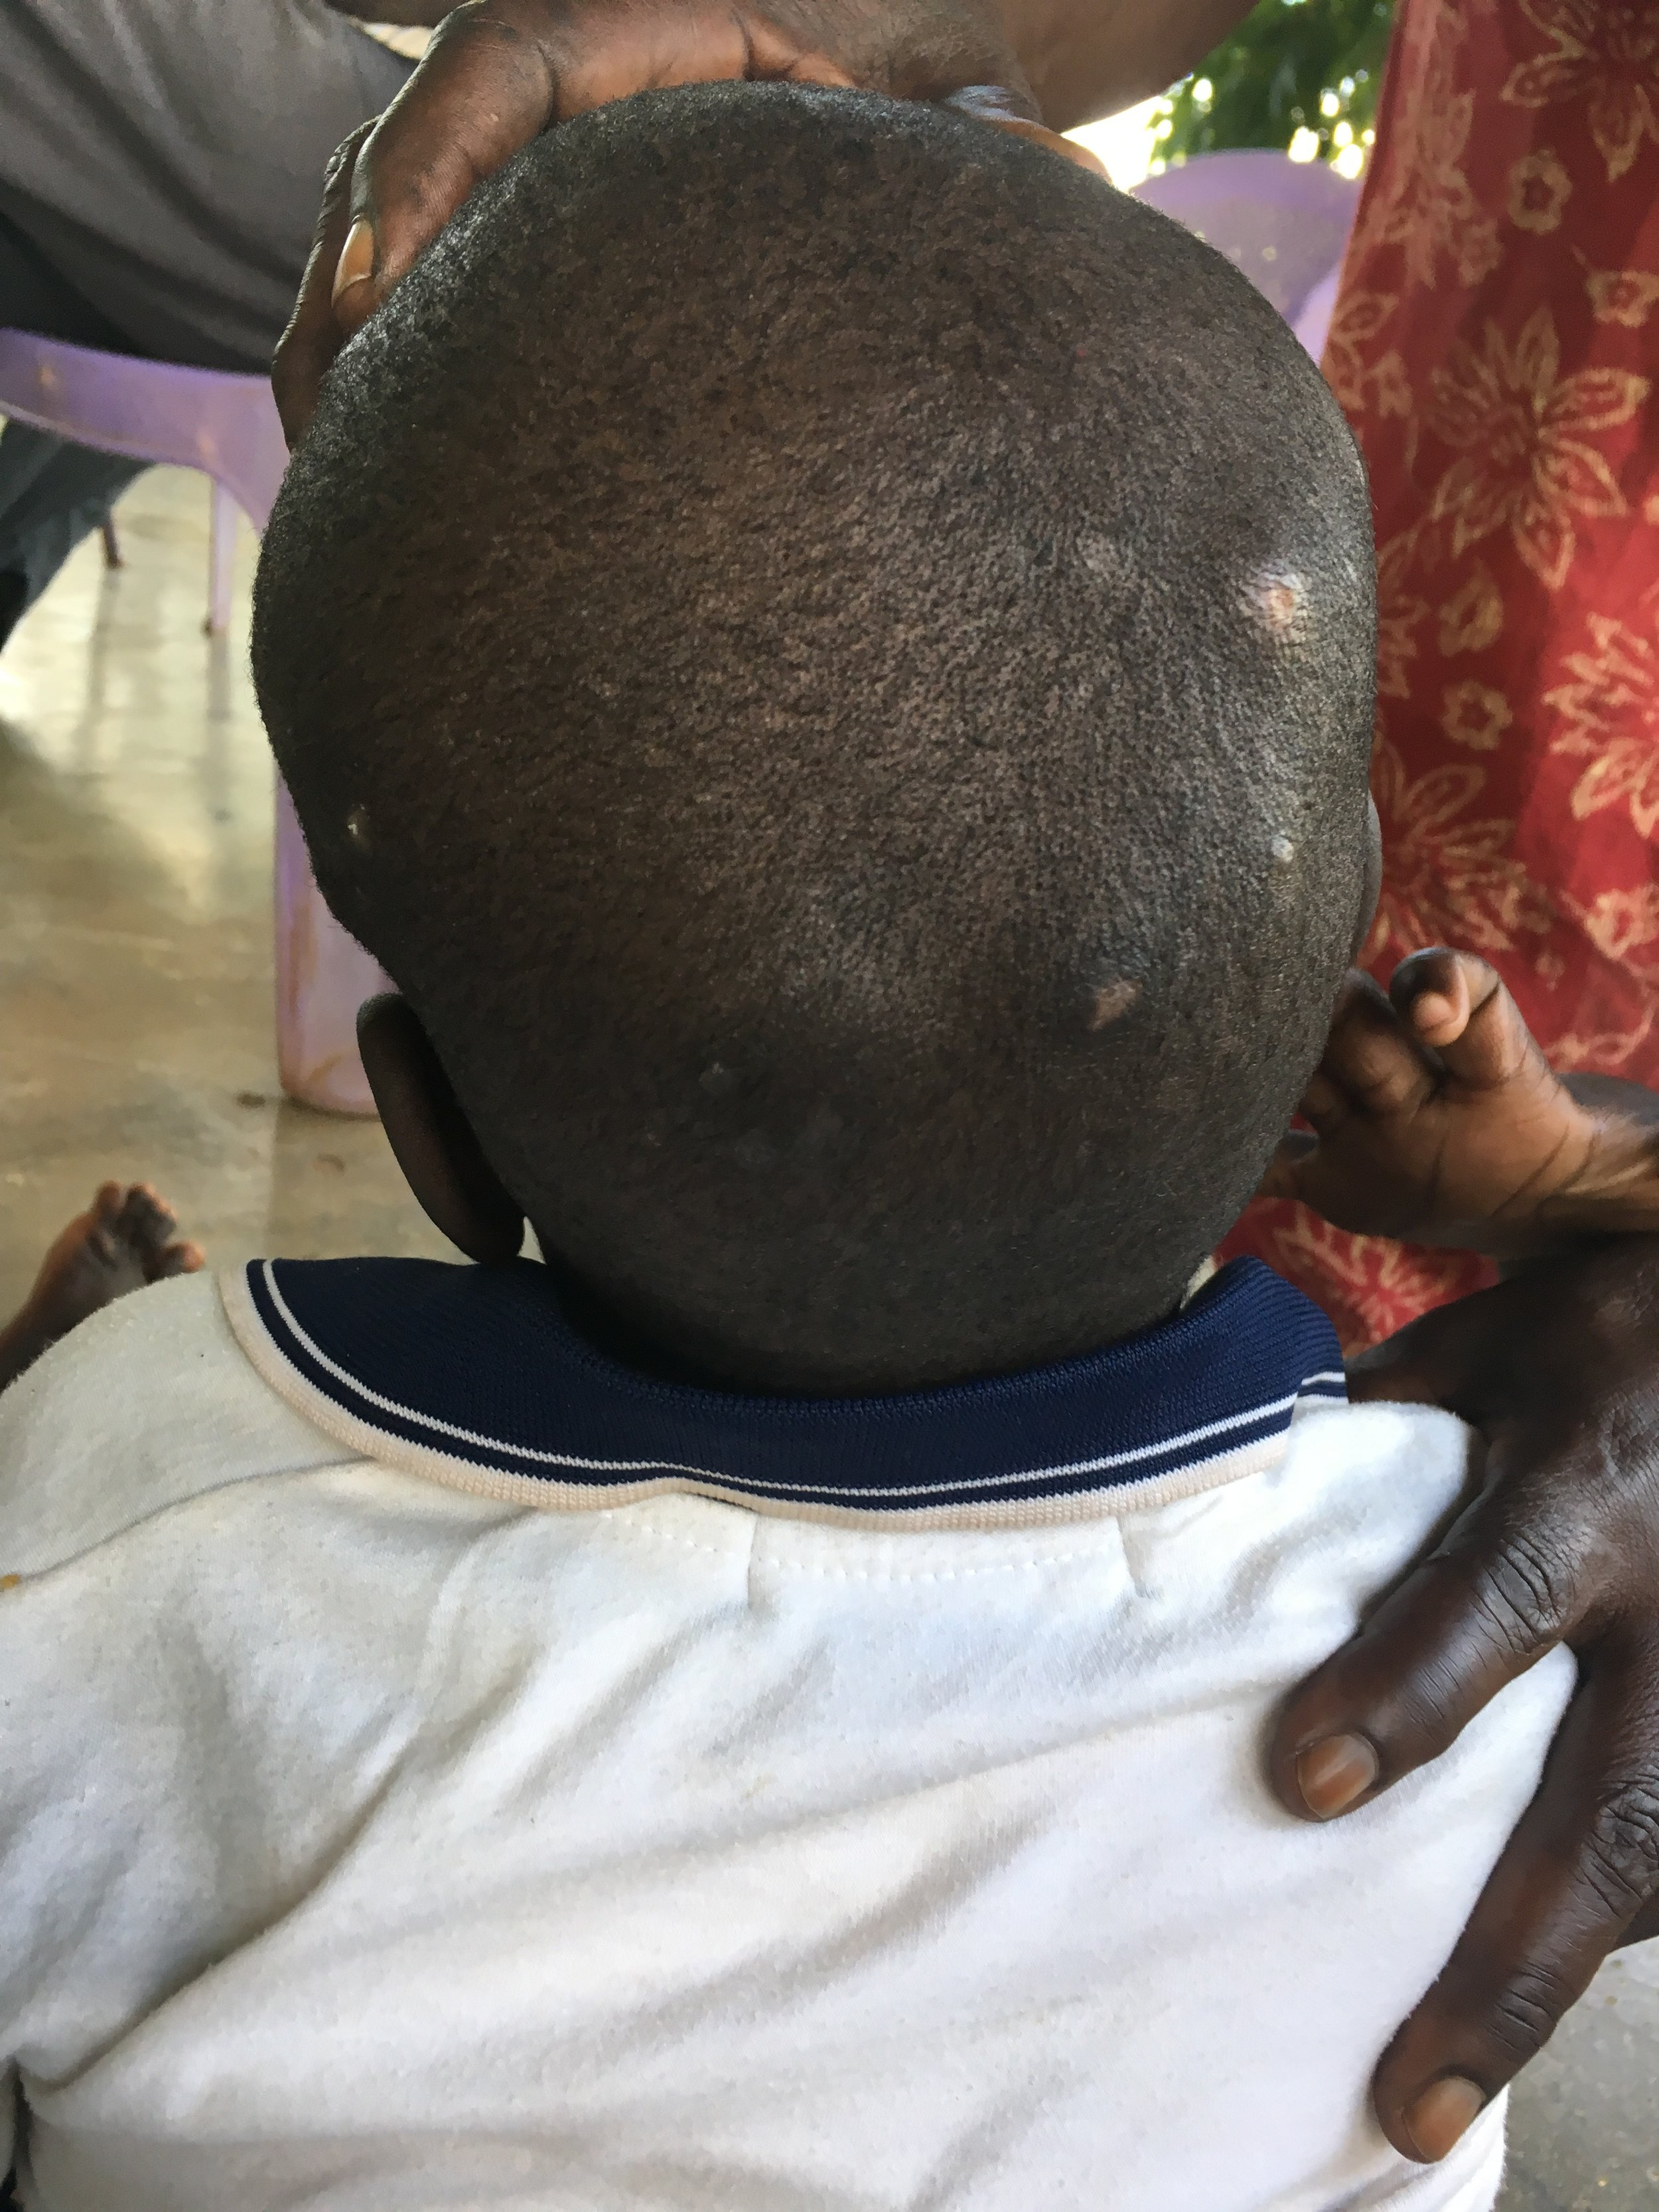 These sores and his severe atrophy are a direct result of being bed-ridden without a personal caregiver. We pray that we are able to give Jesus the 24 hour attention he deserves.